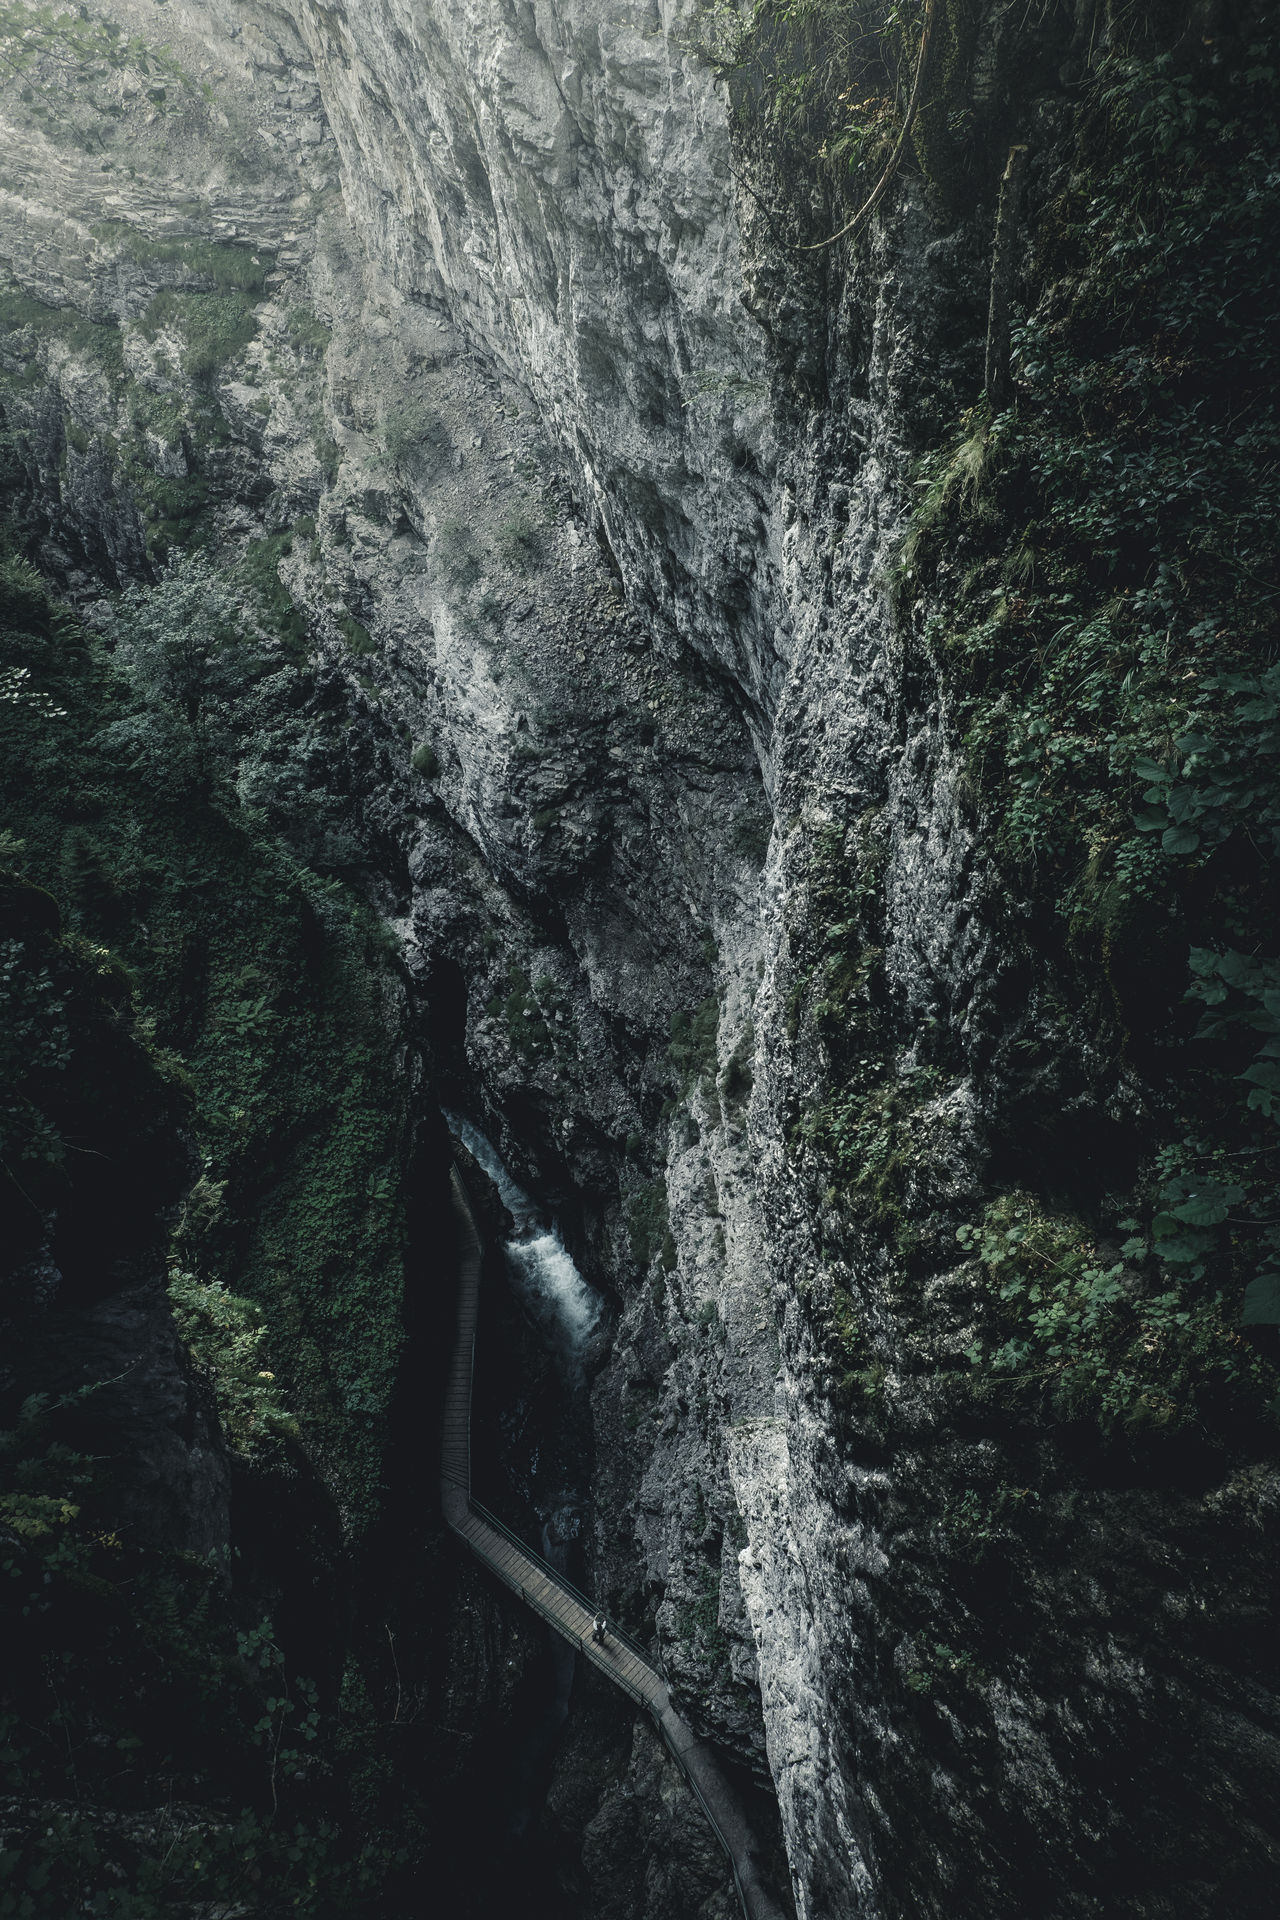 waterfall, motion, flowing water, forest, water